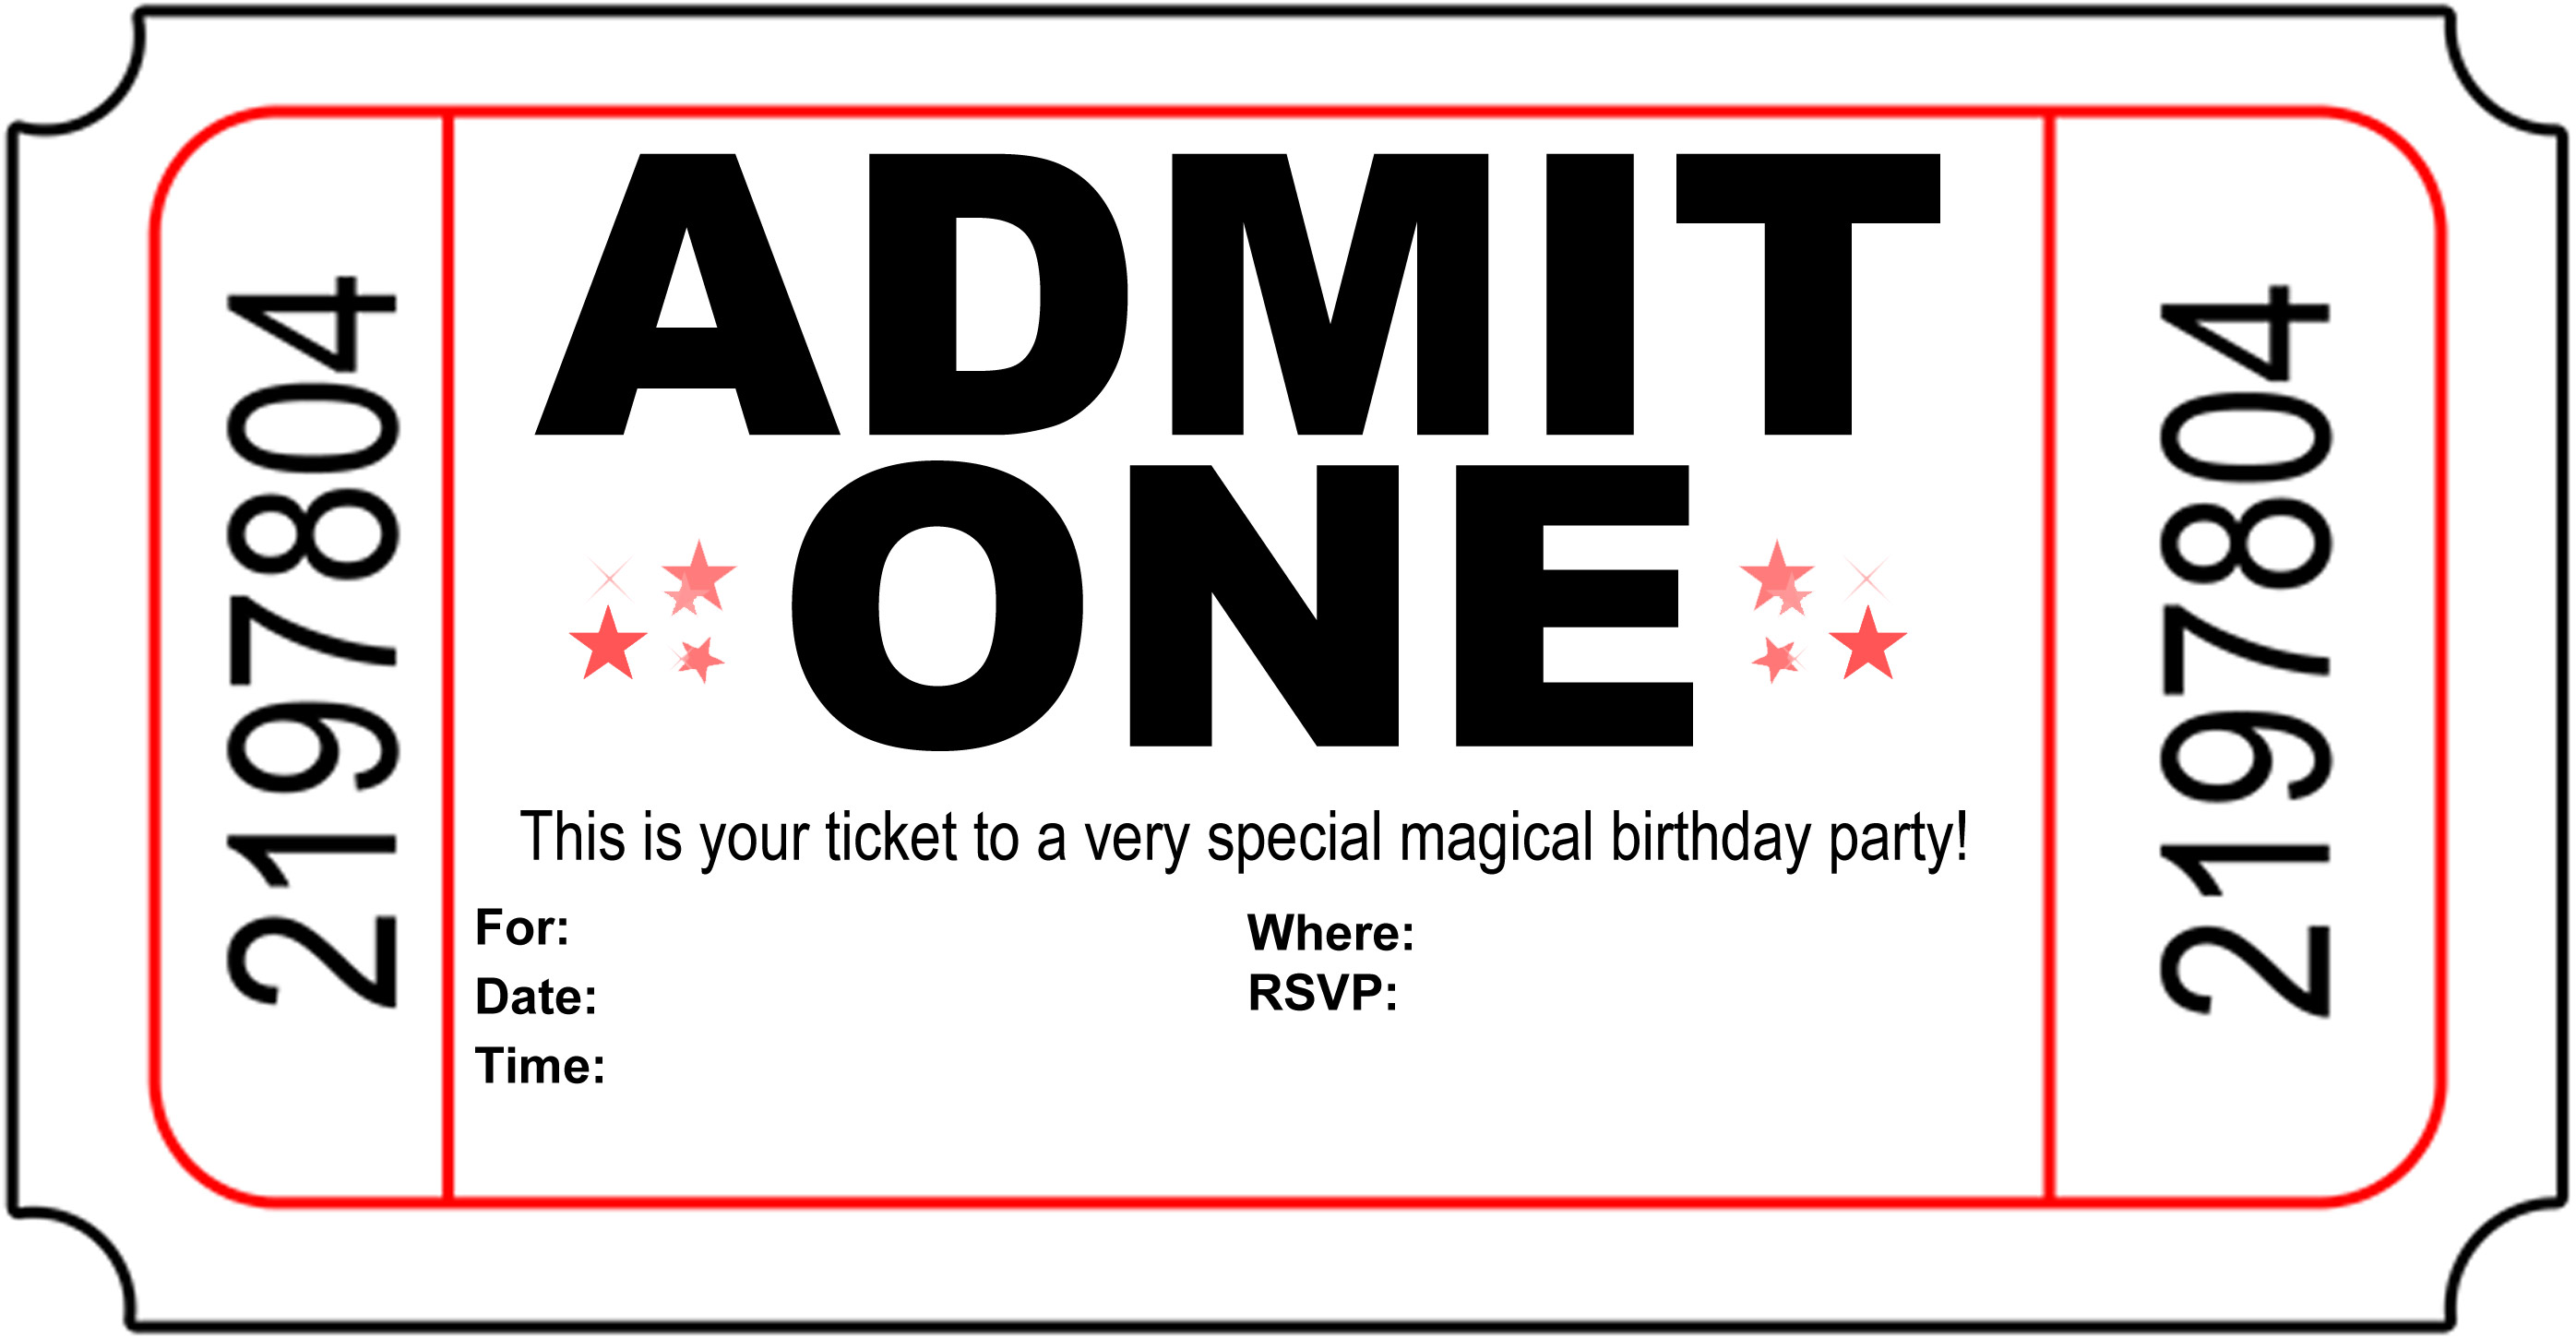 Free Printable Birthday Party Invitations Kansas Magician - Birthday invitation email templates free